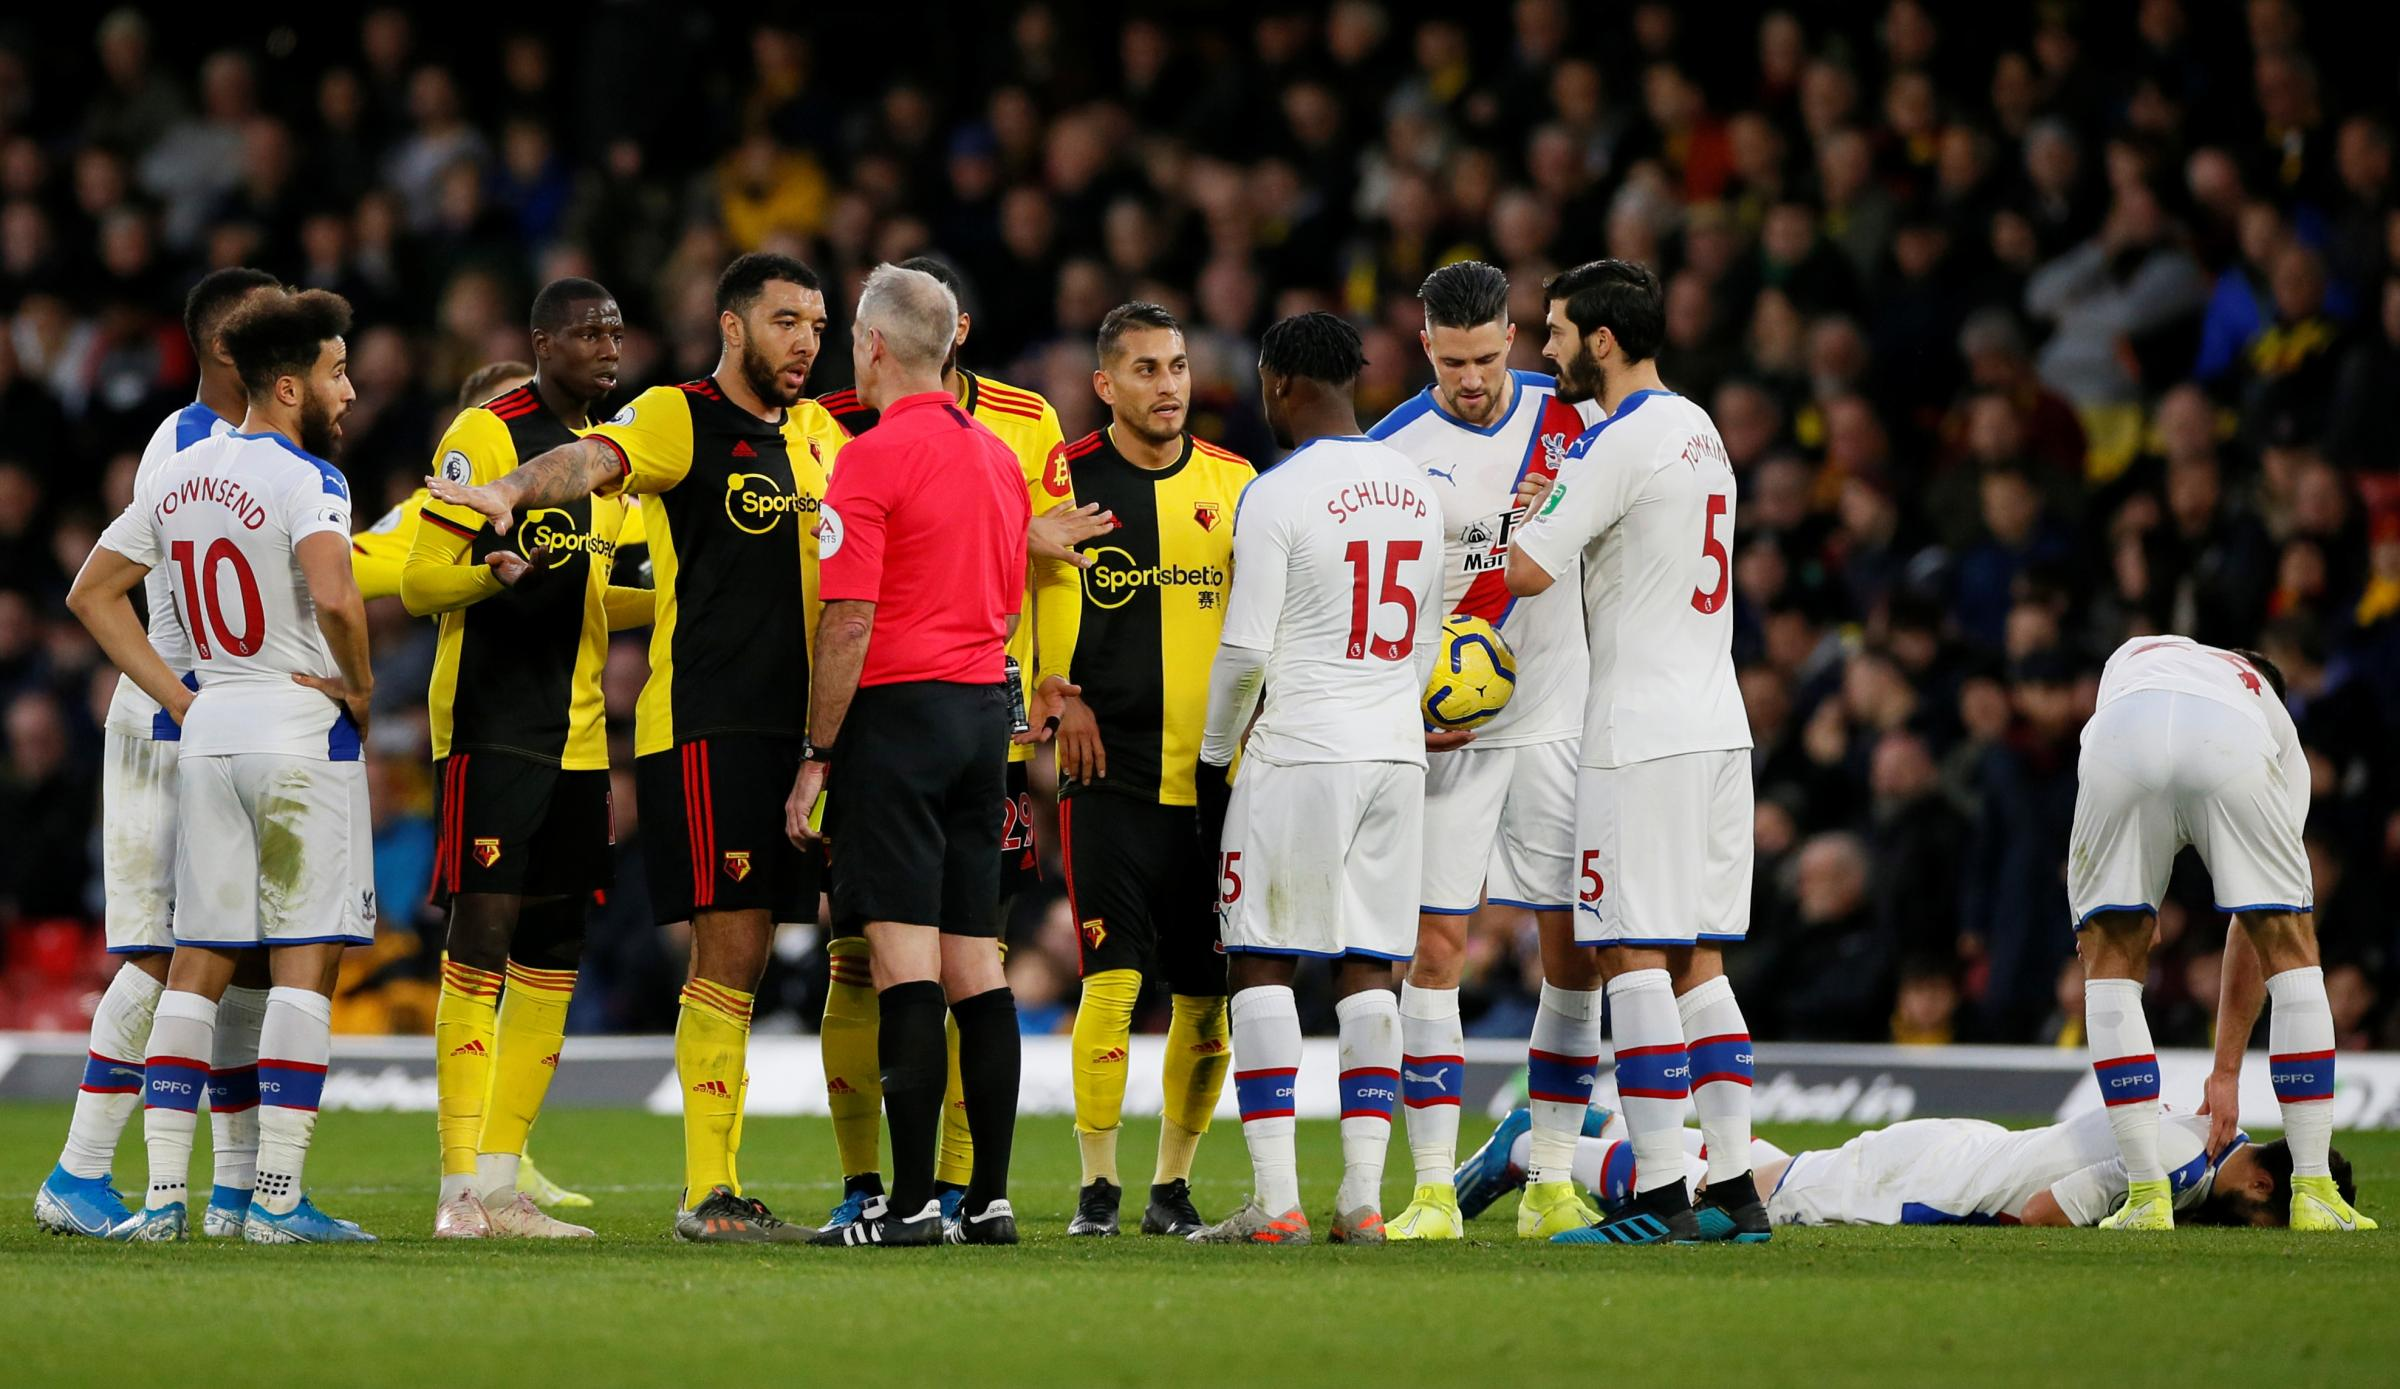 Relive our coverage of Watford's goalless draw with Crystal Palace